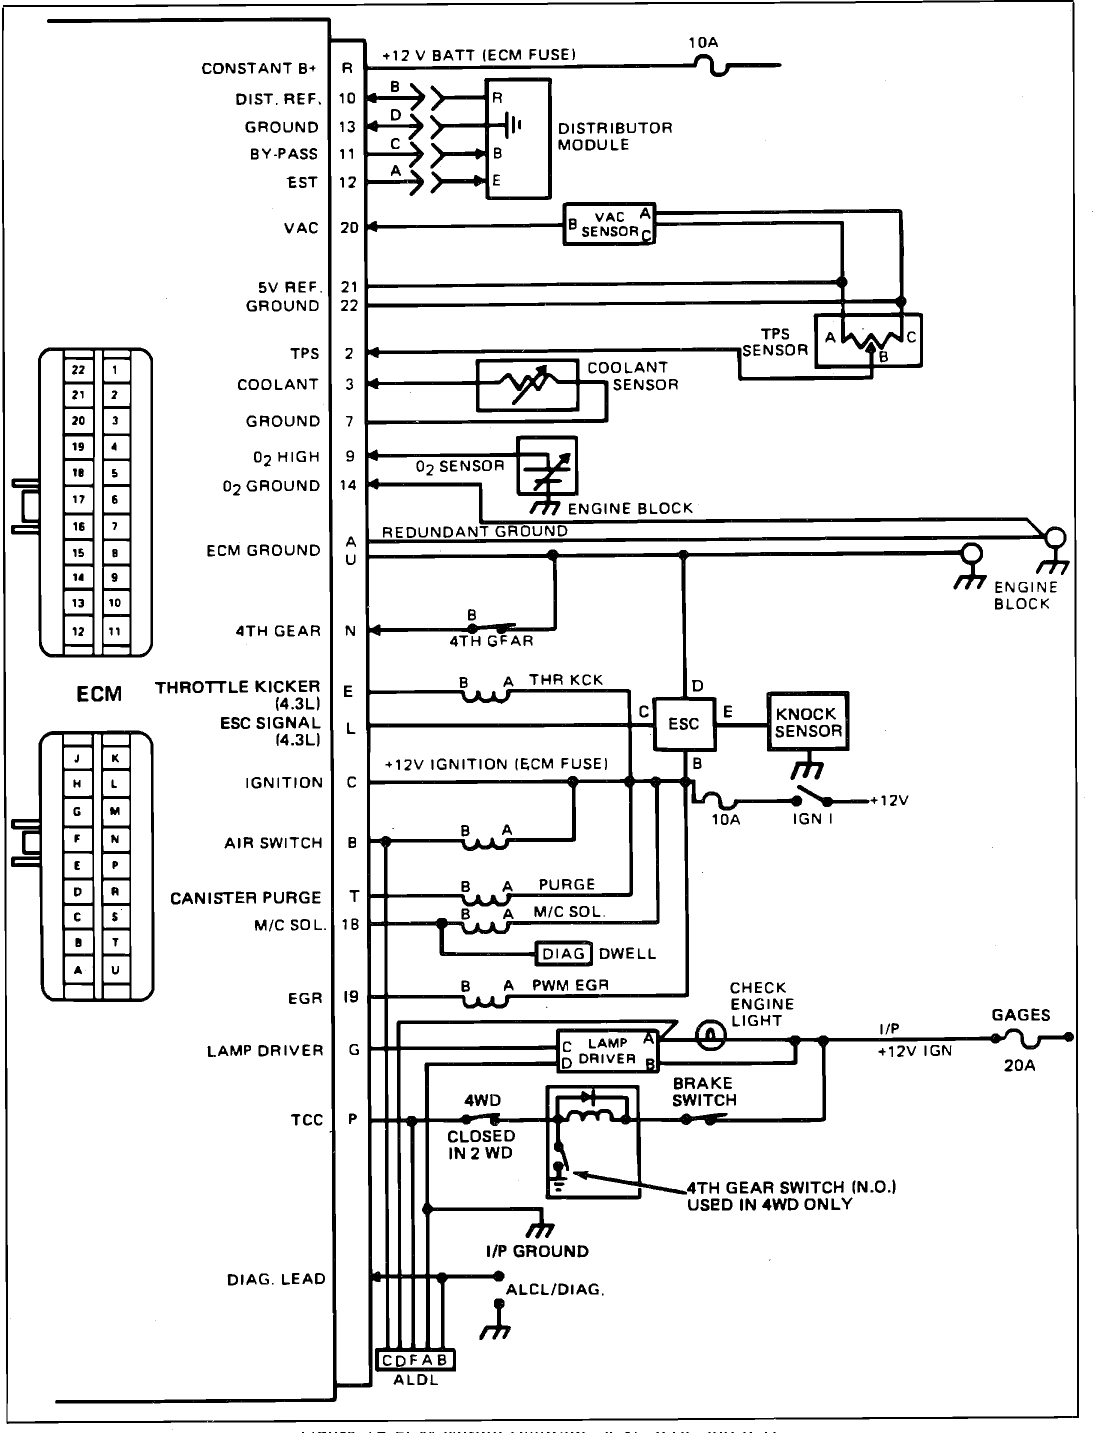 1994 Chevy G20 Van Fuse Box Infiniti Auto Electrical Wiring Diagram Keanken Co Location